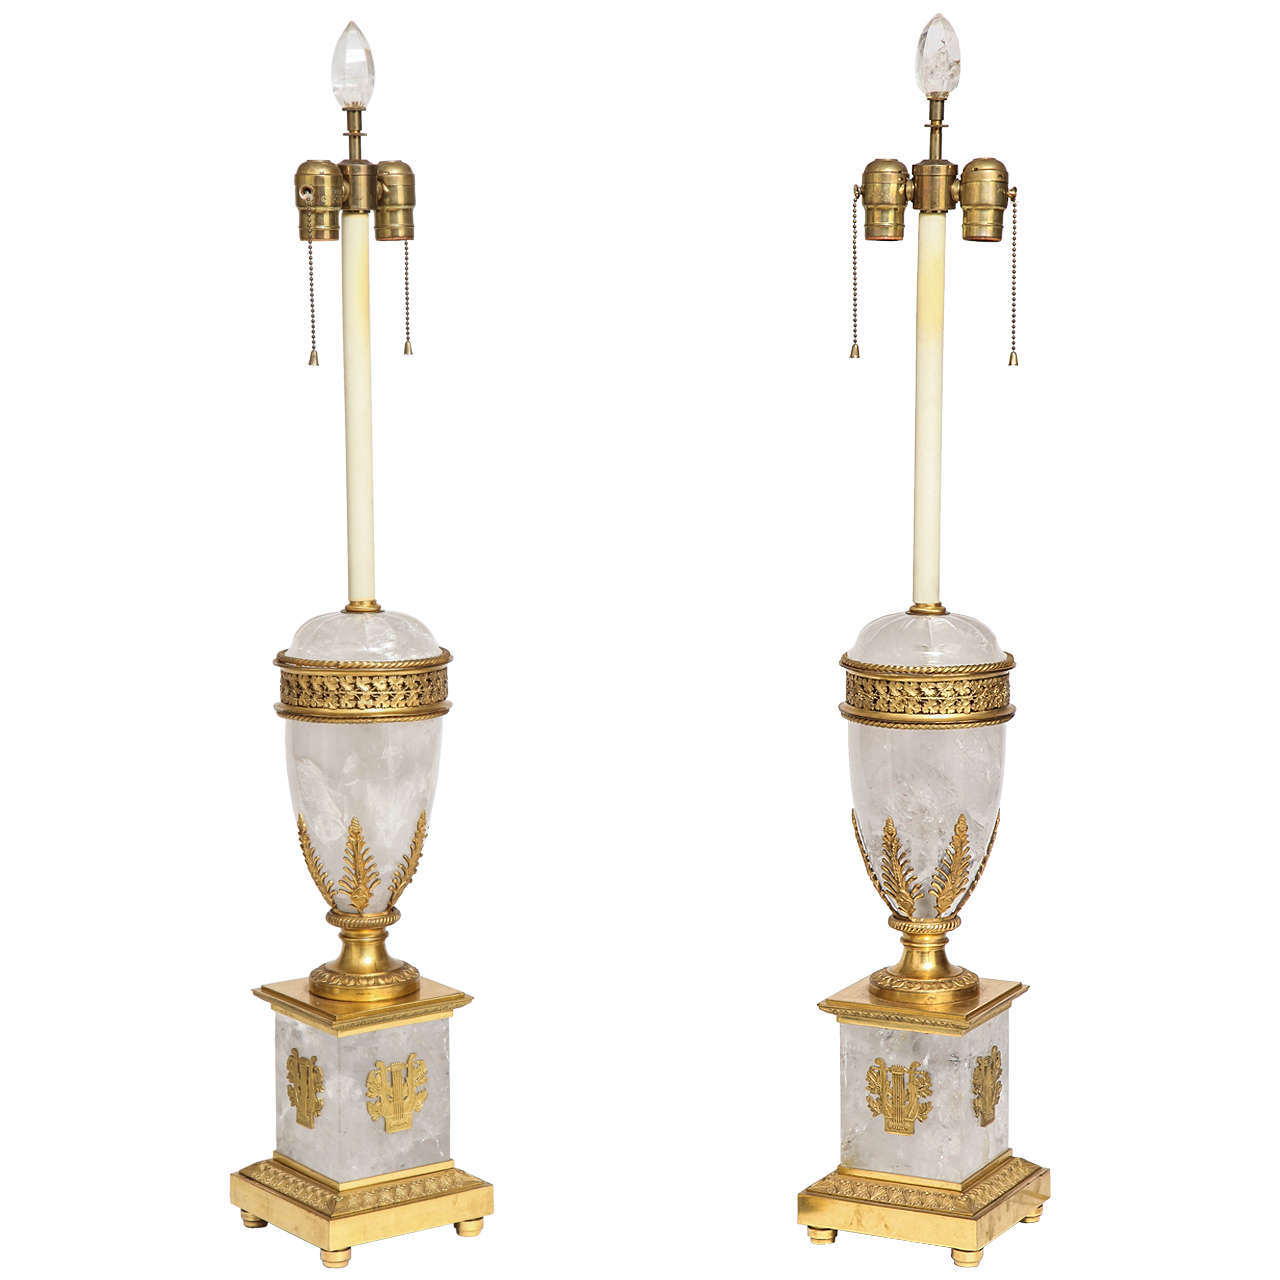 french neoclassical rock crystal and ormolu lamps for sale at 1stdibs. Black Bedroom Furniture Sets. Home Design Ideas